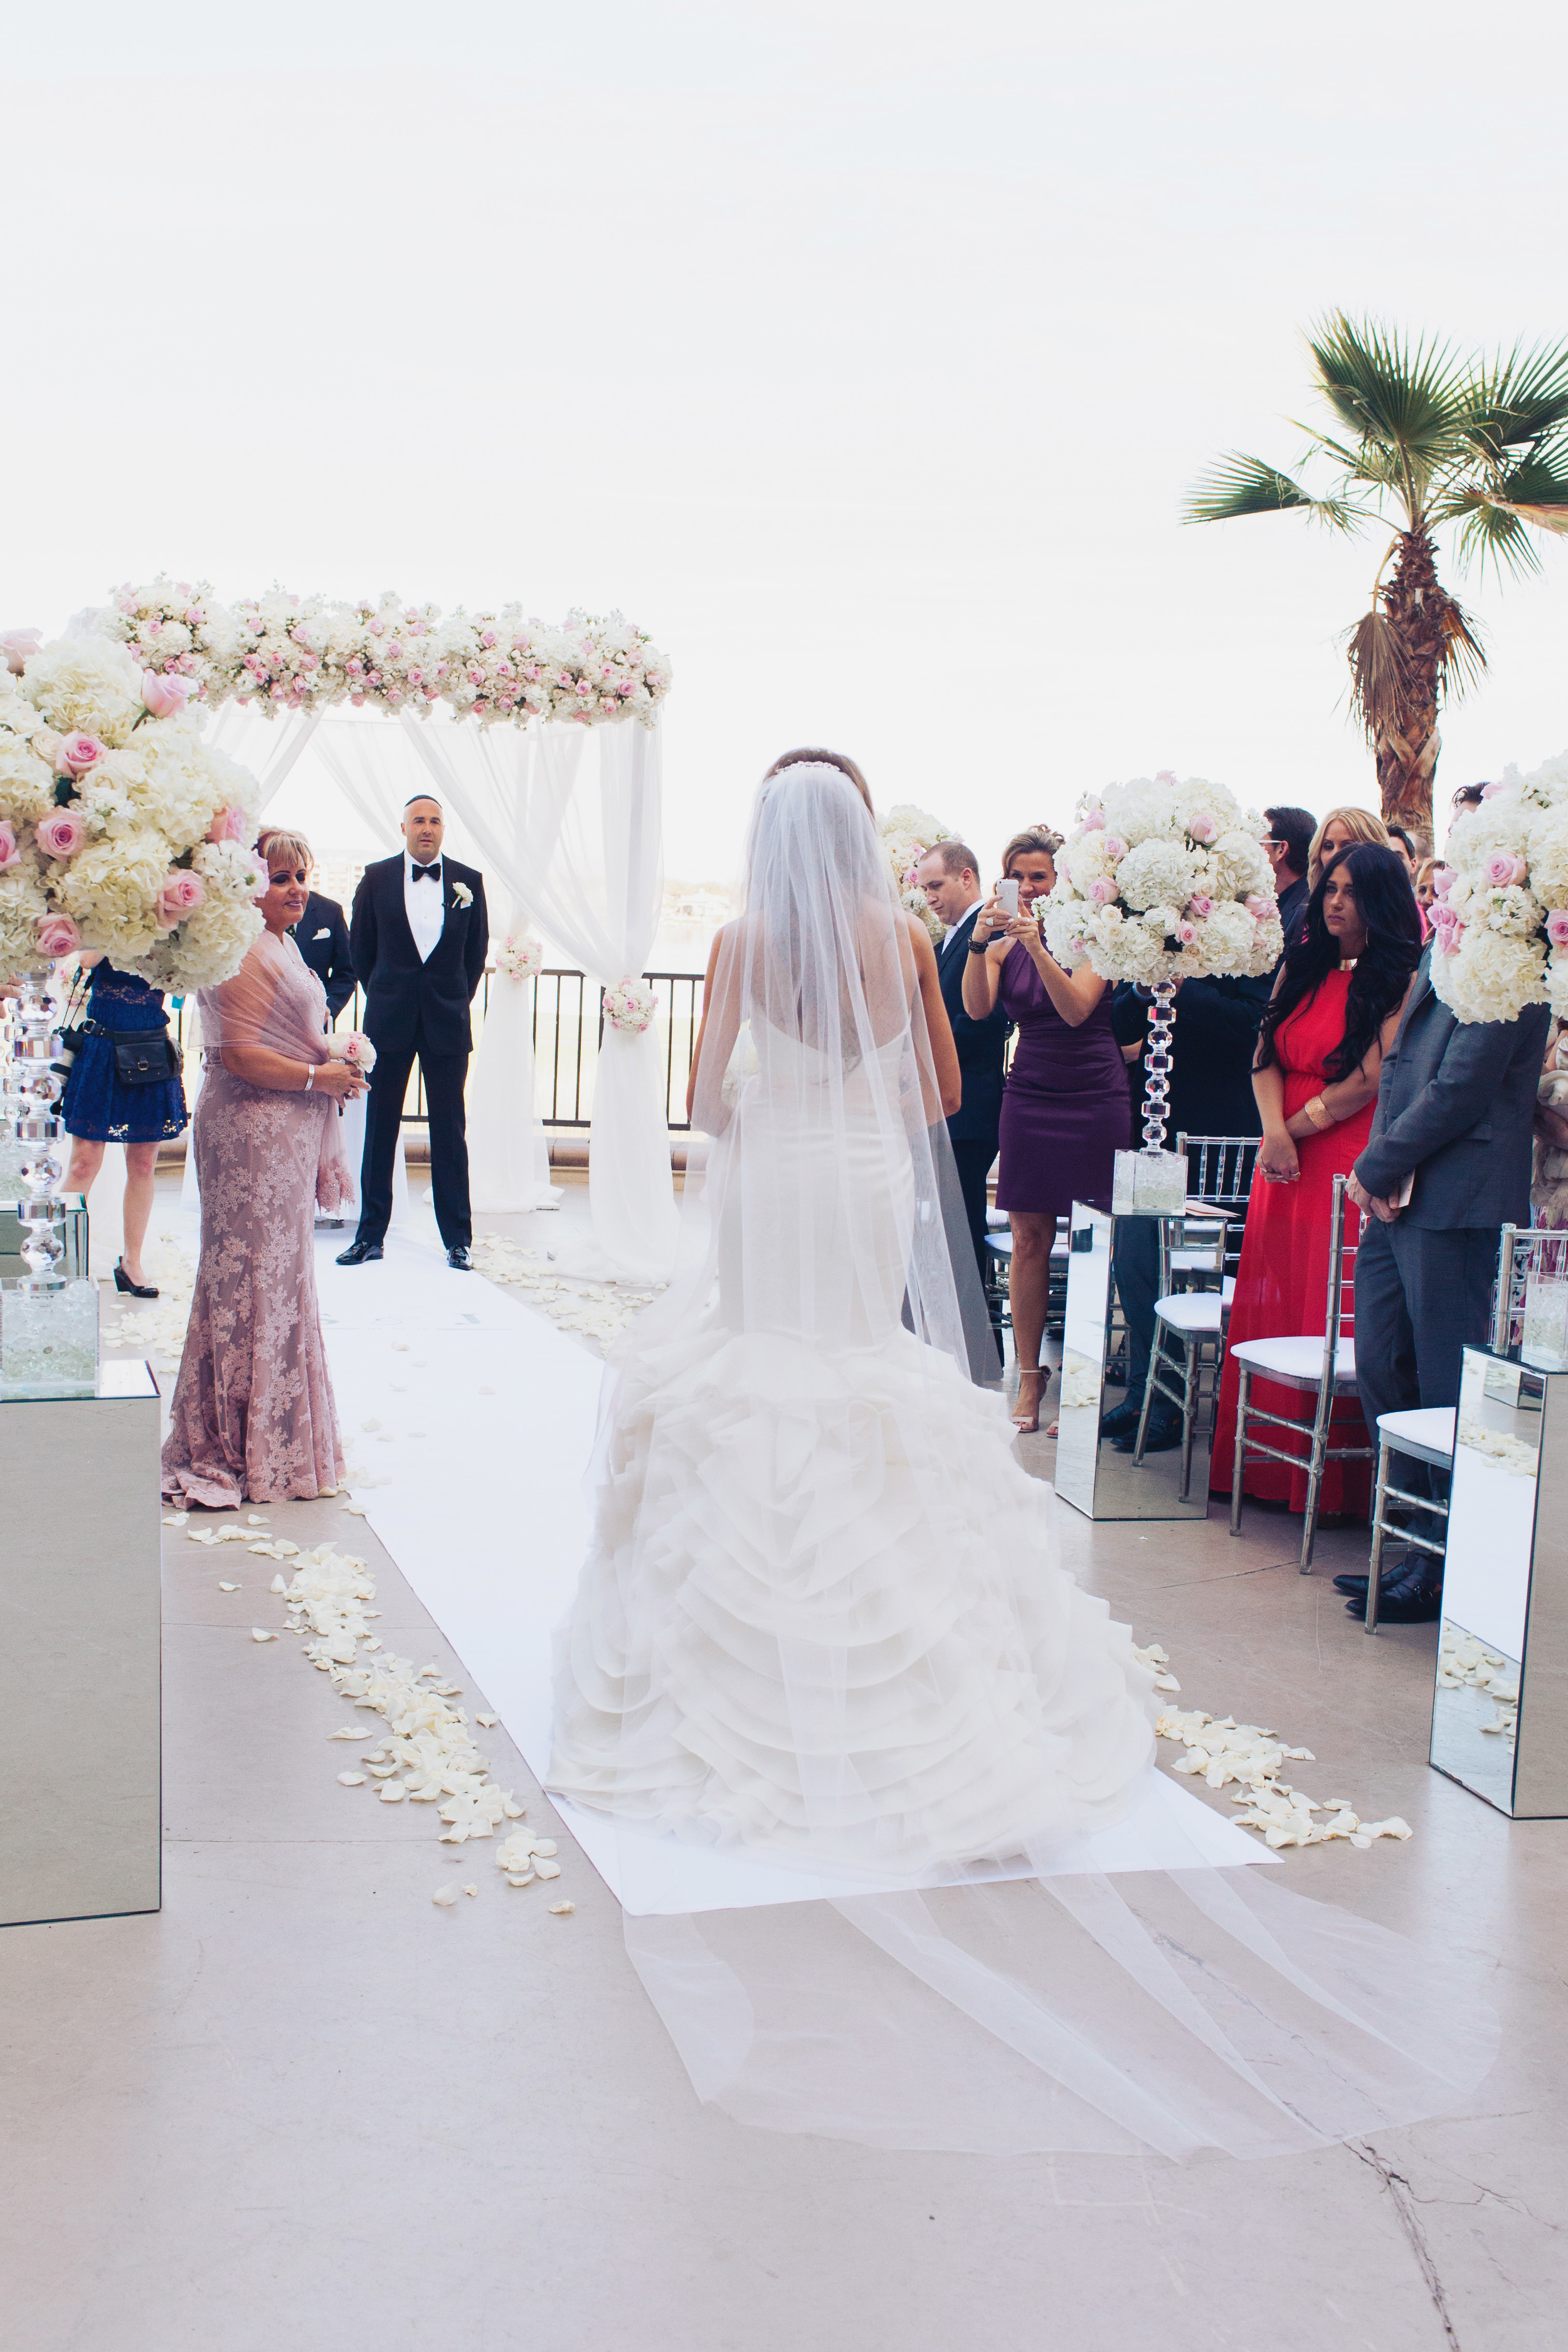 The bride walked half way down the aisle on her own before meeting her mother, who gave her away at the end.    Las Vegas Wedding Planner Andrea Eppolito   Wedding at Lake Las Vegas   White and Blu  sh and Grey Wedding   Luxury Wedding Las Vegas